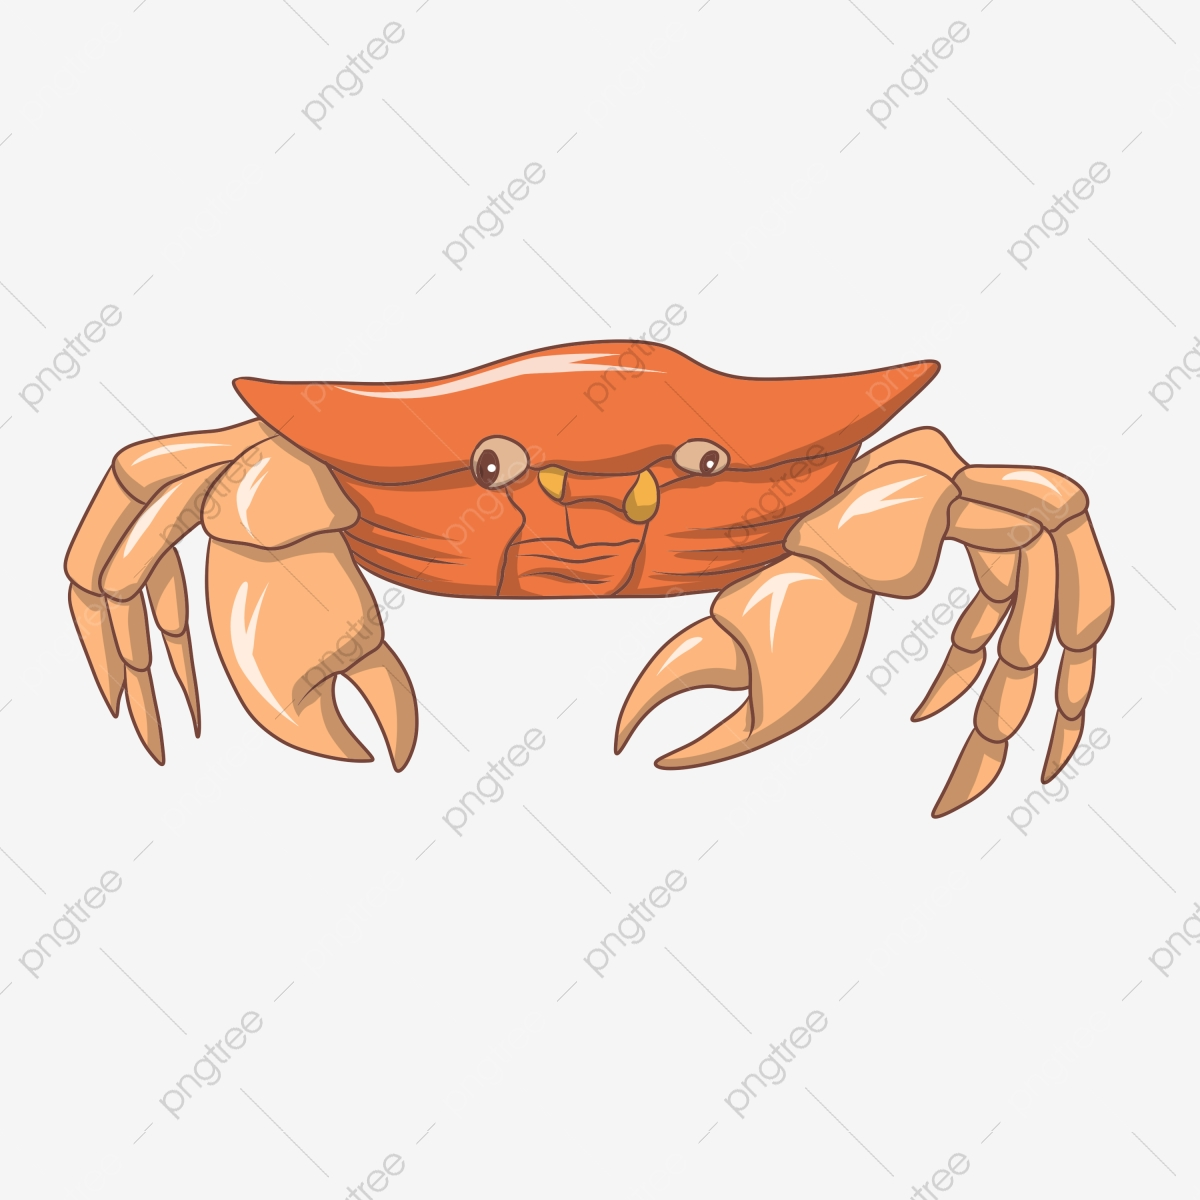 Cute Crab Cute Clipart Crab Big Crab Png Transparent Clipart Image And Psd File For Free Download Are you searching for cute crab png images or vector? https pngtree com freepng cute crab 2269212 html